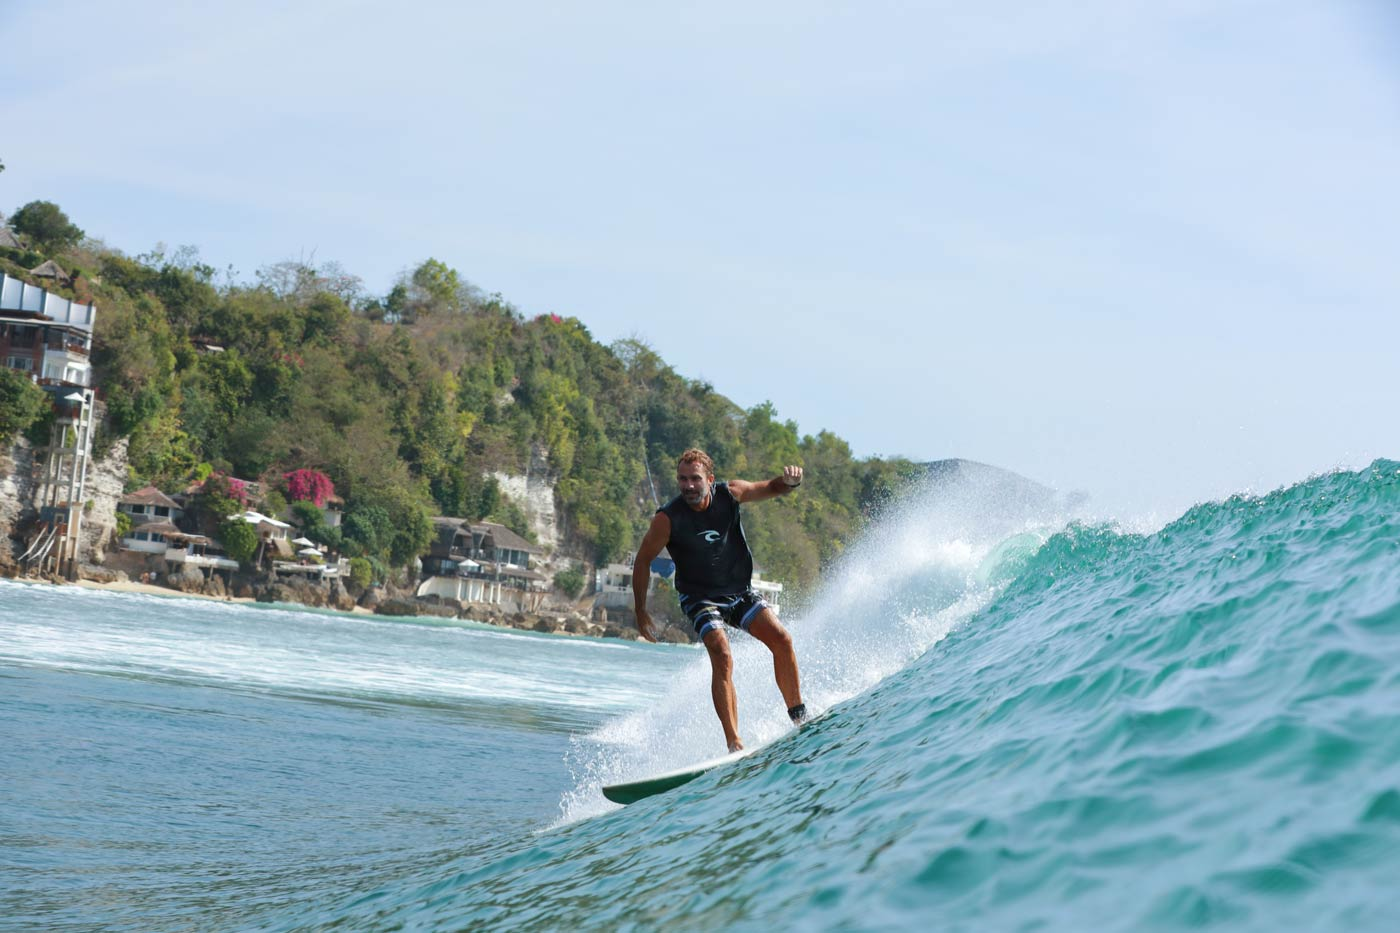 TOP 10 SURFING TIPS FOR INTERMEDIATE SURFERS